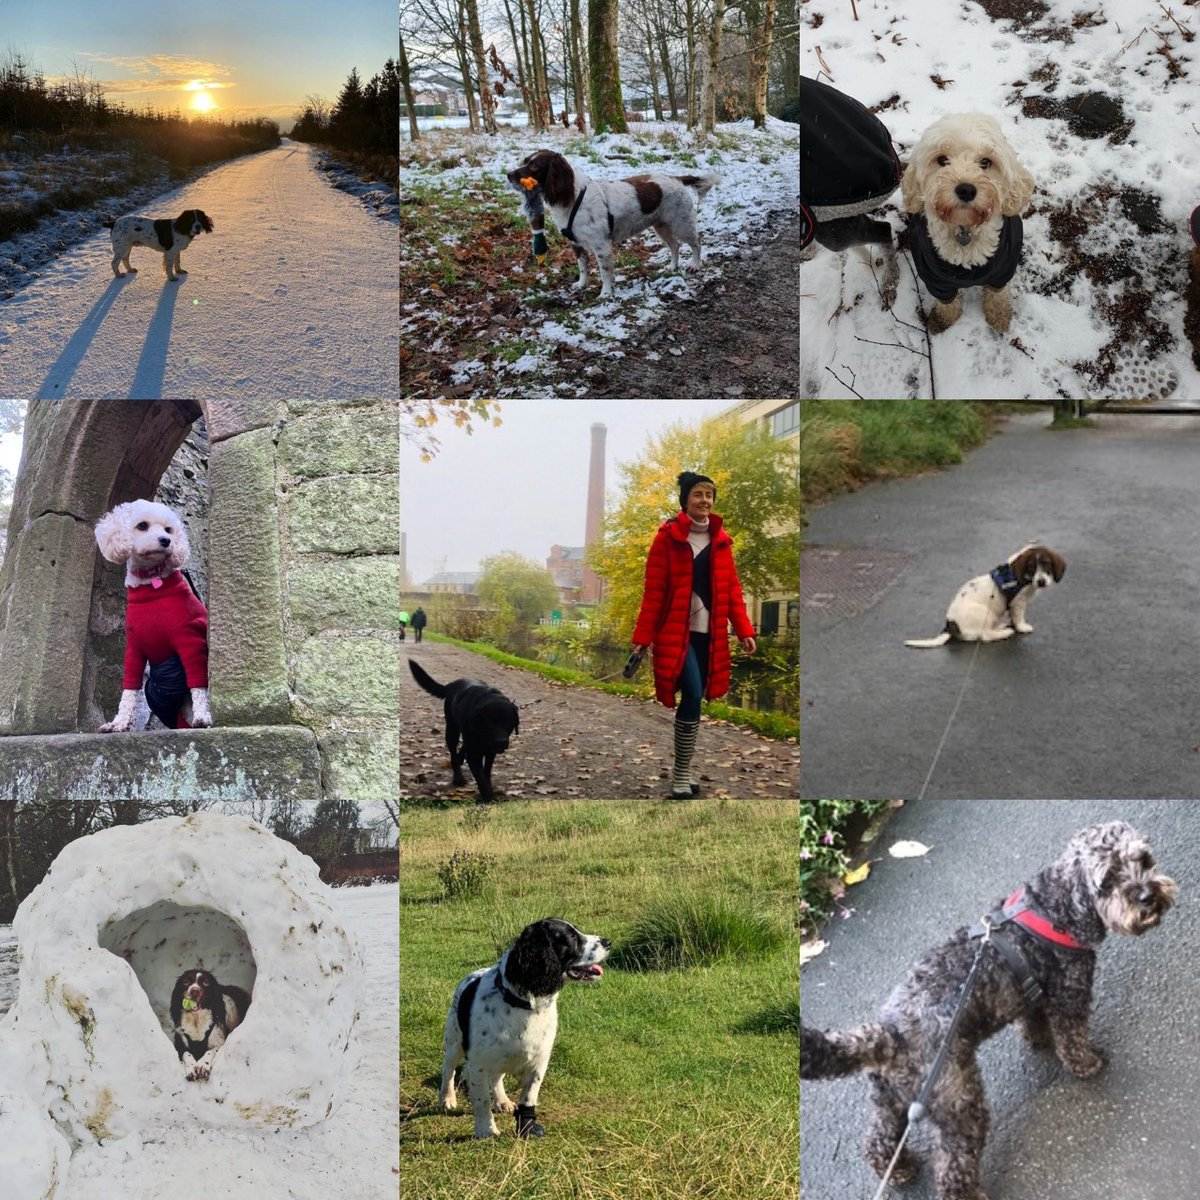 Did somebody say WALKIES? The Team Damart Doggies are loving getting out for a wintery walk this weekend. Send in your snaps of your pooches out for their #SundayStroll